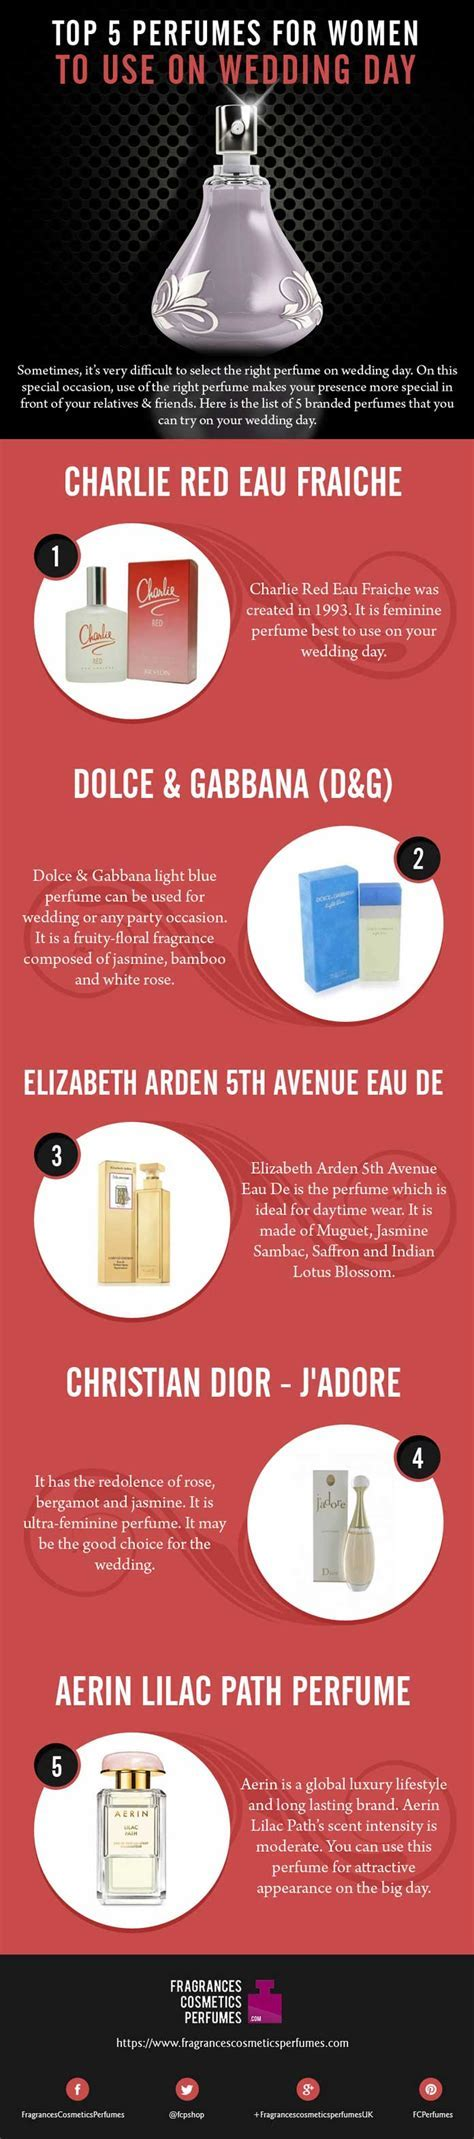 Top 5 Perfumes for Women to use on Wedding Day   Zigverve